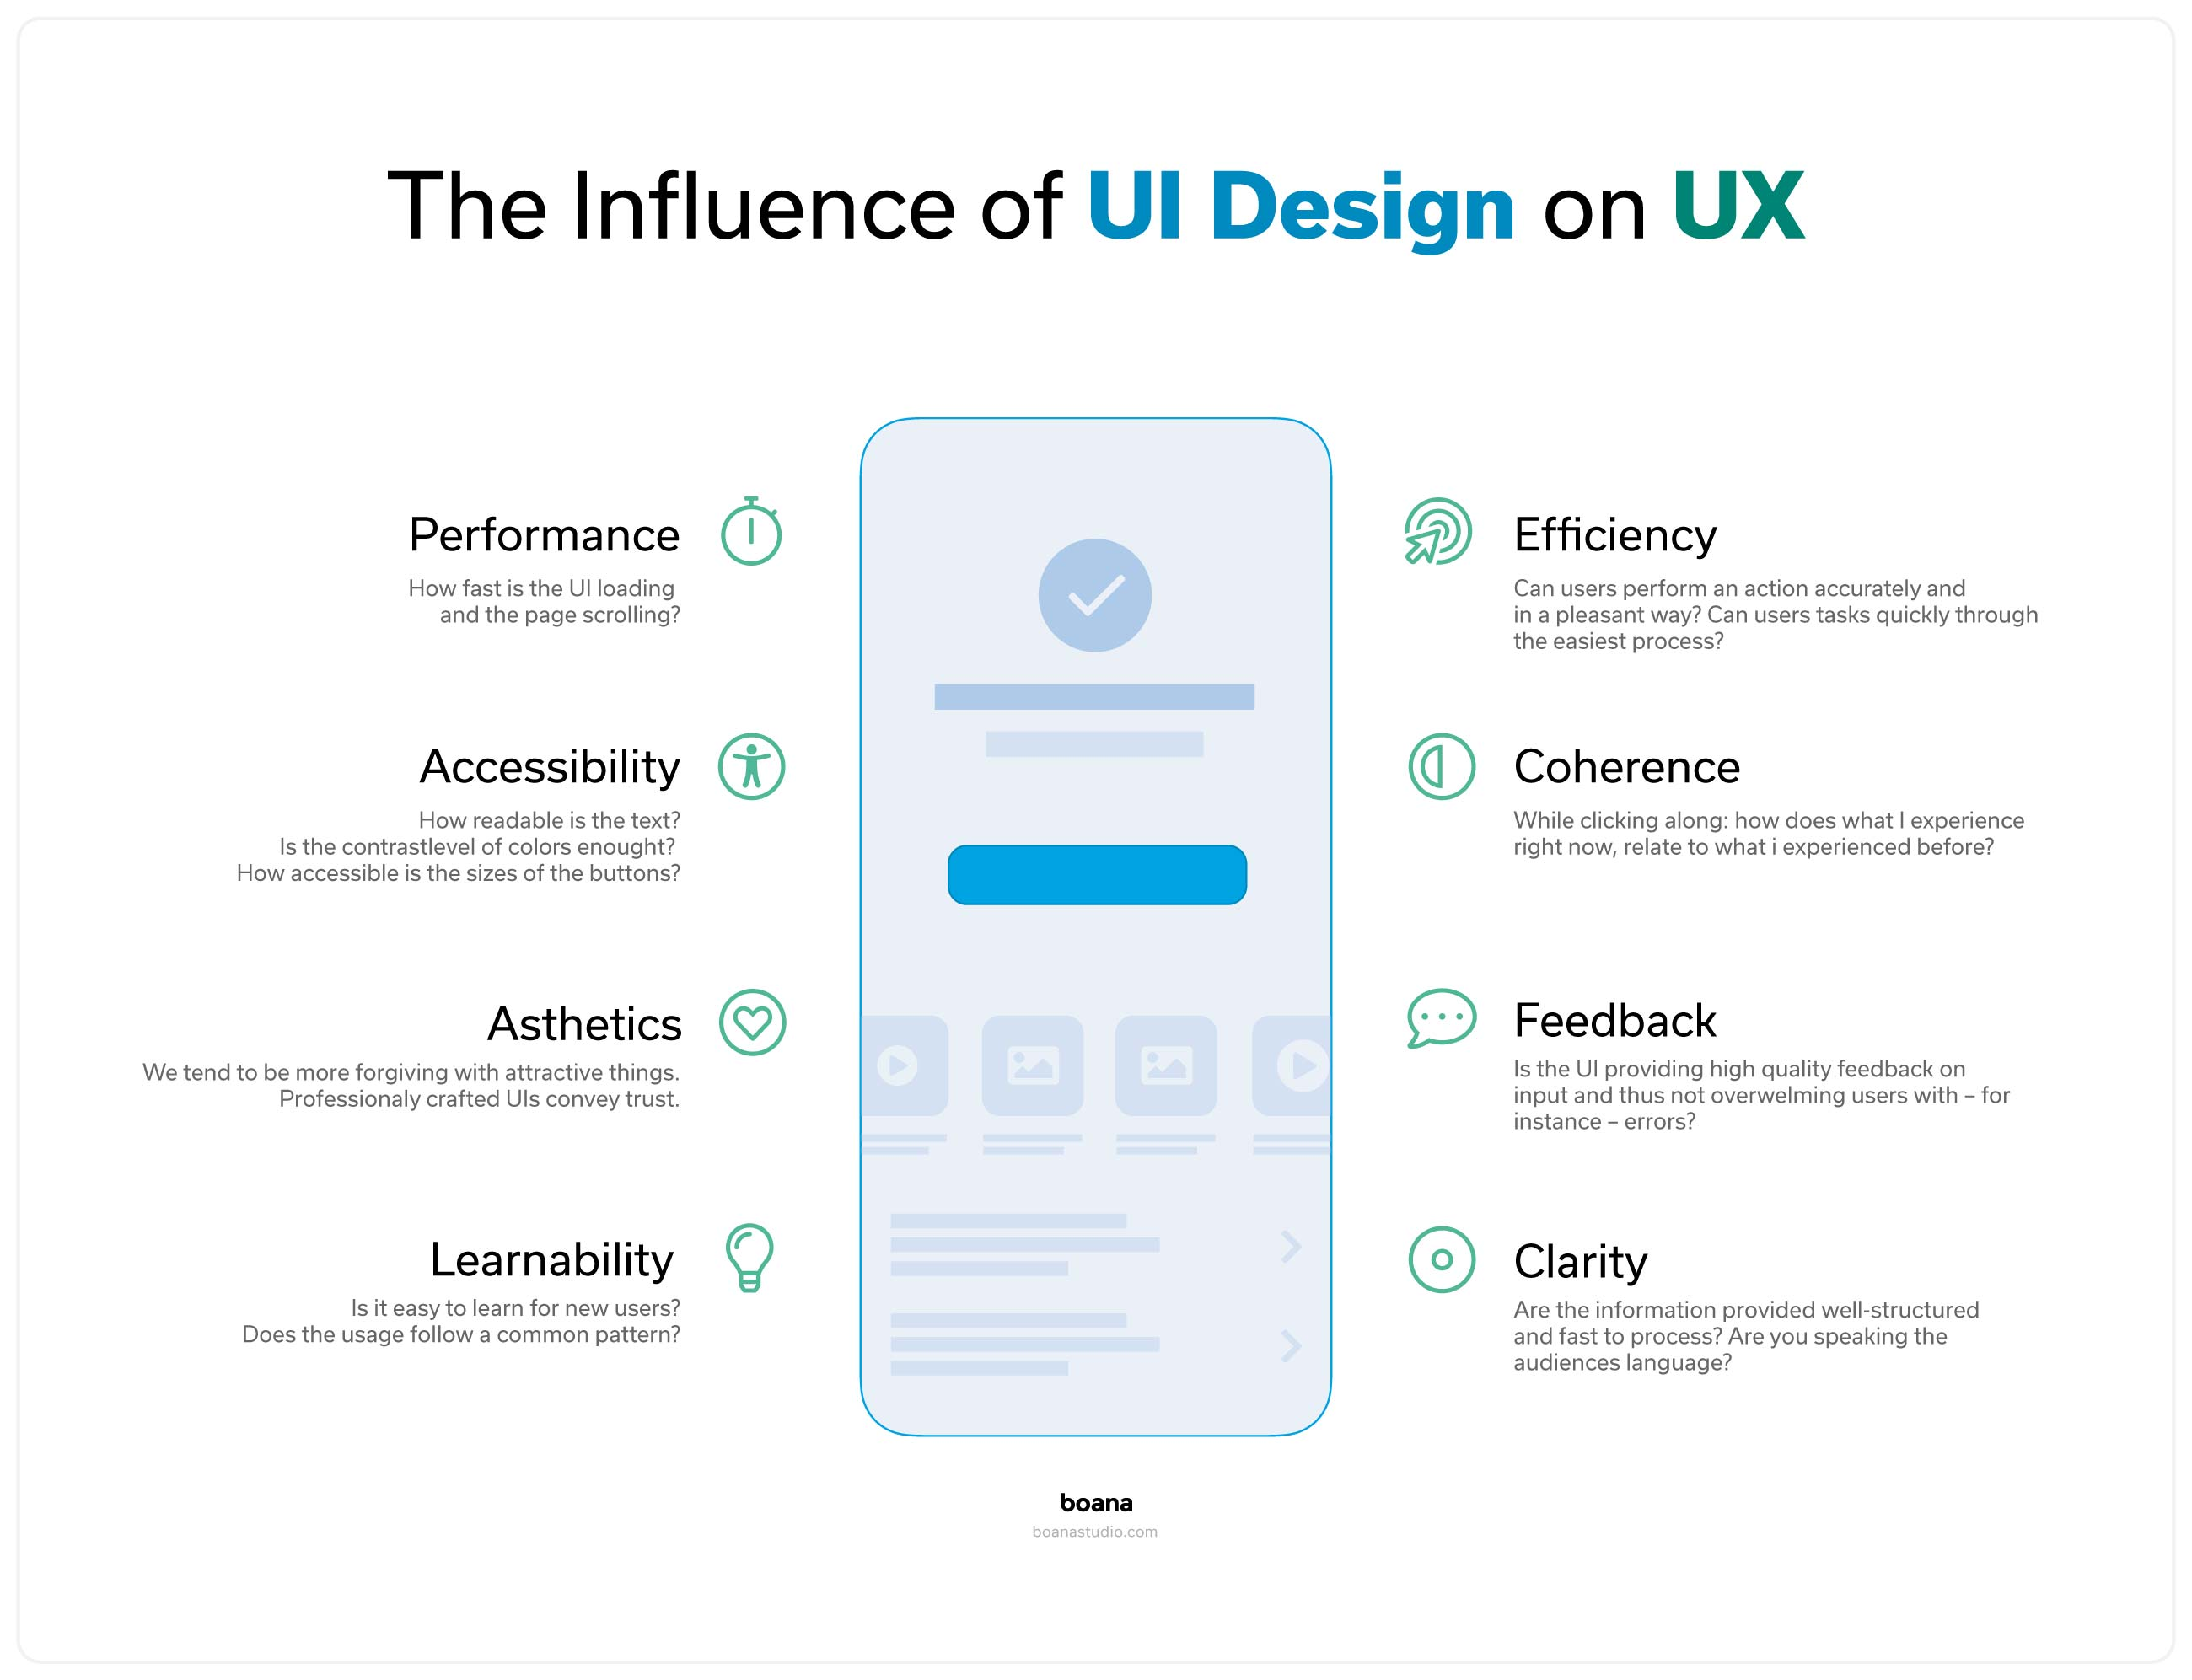 The influence of User Interface Design on User Experience